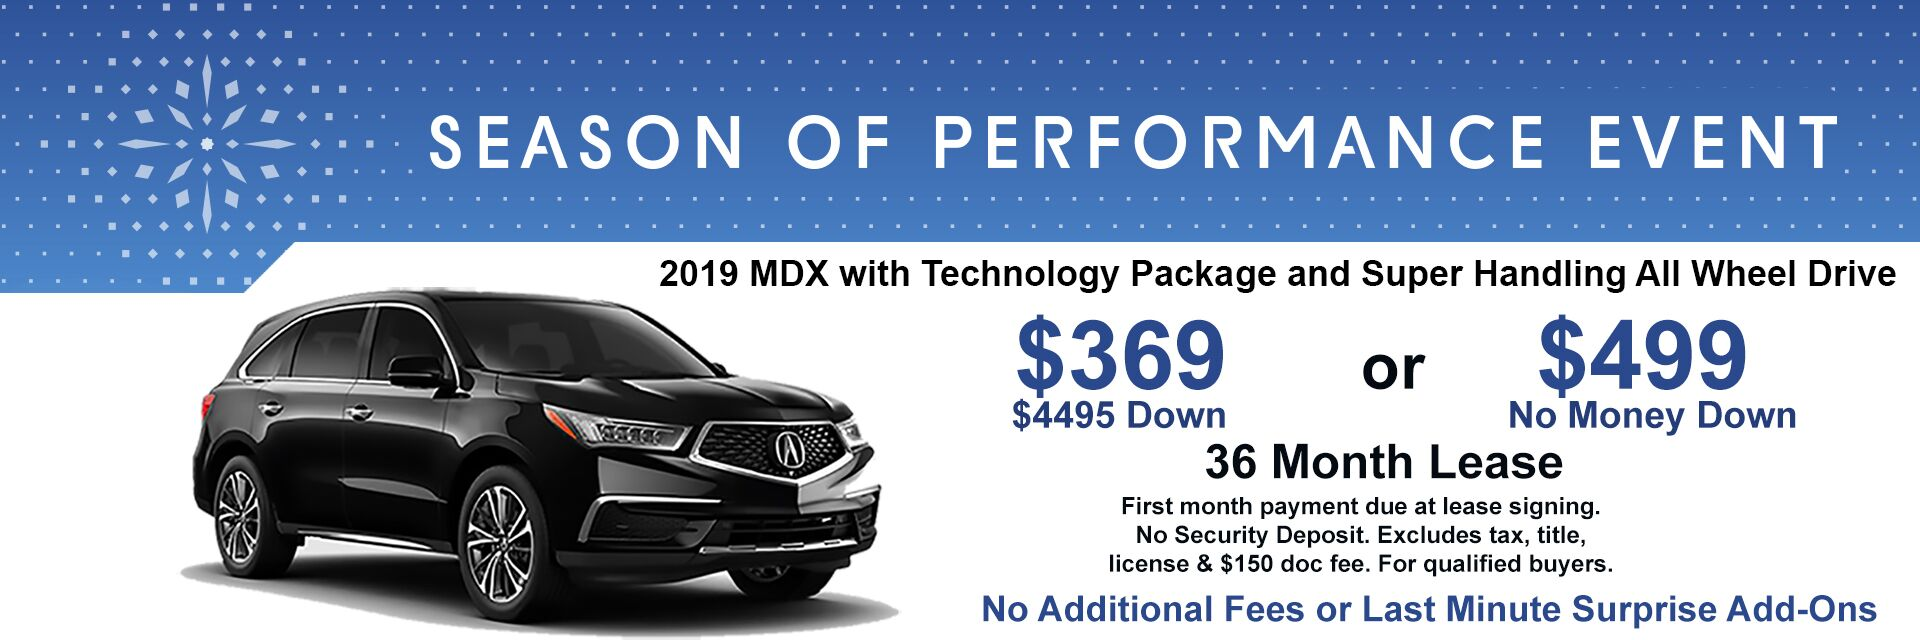 2019 MDX Lease Special